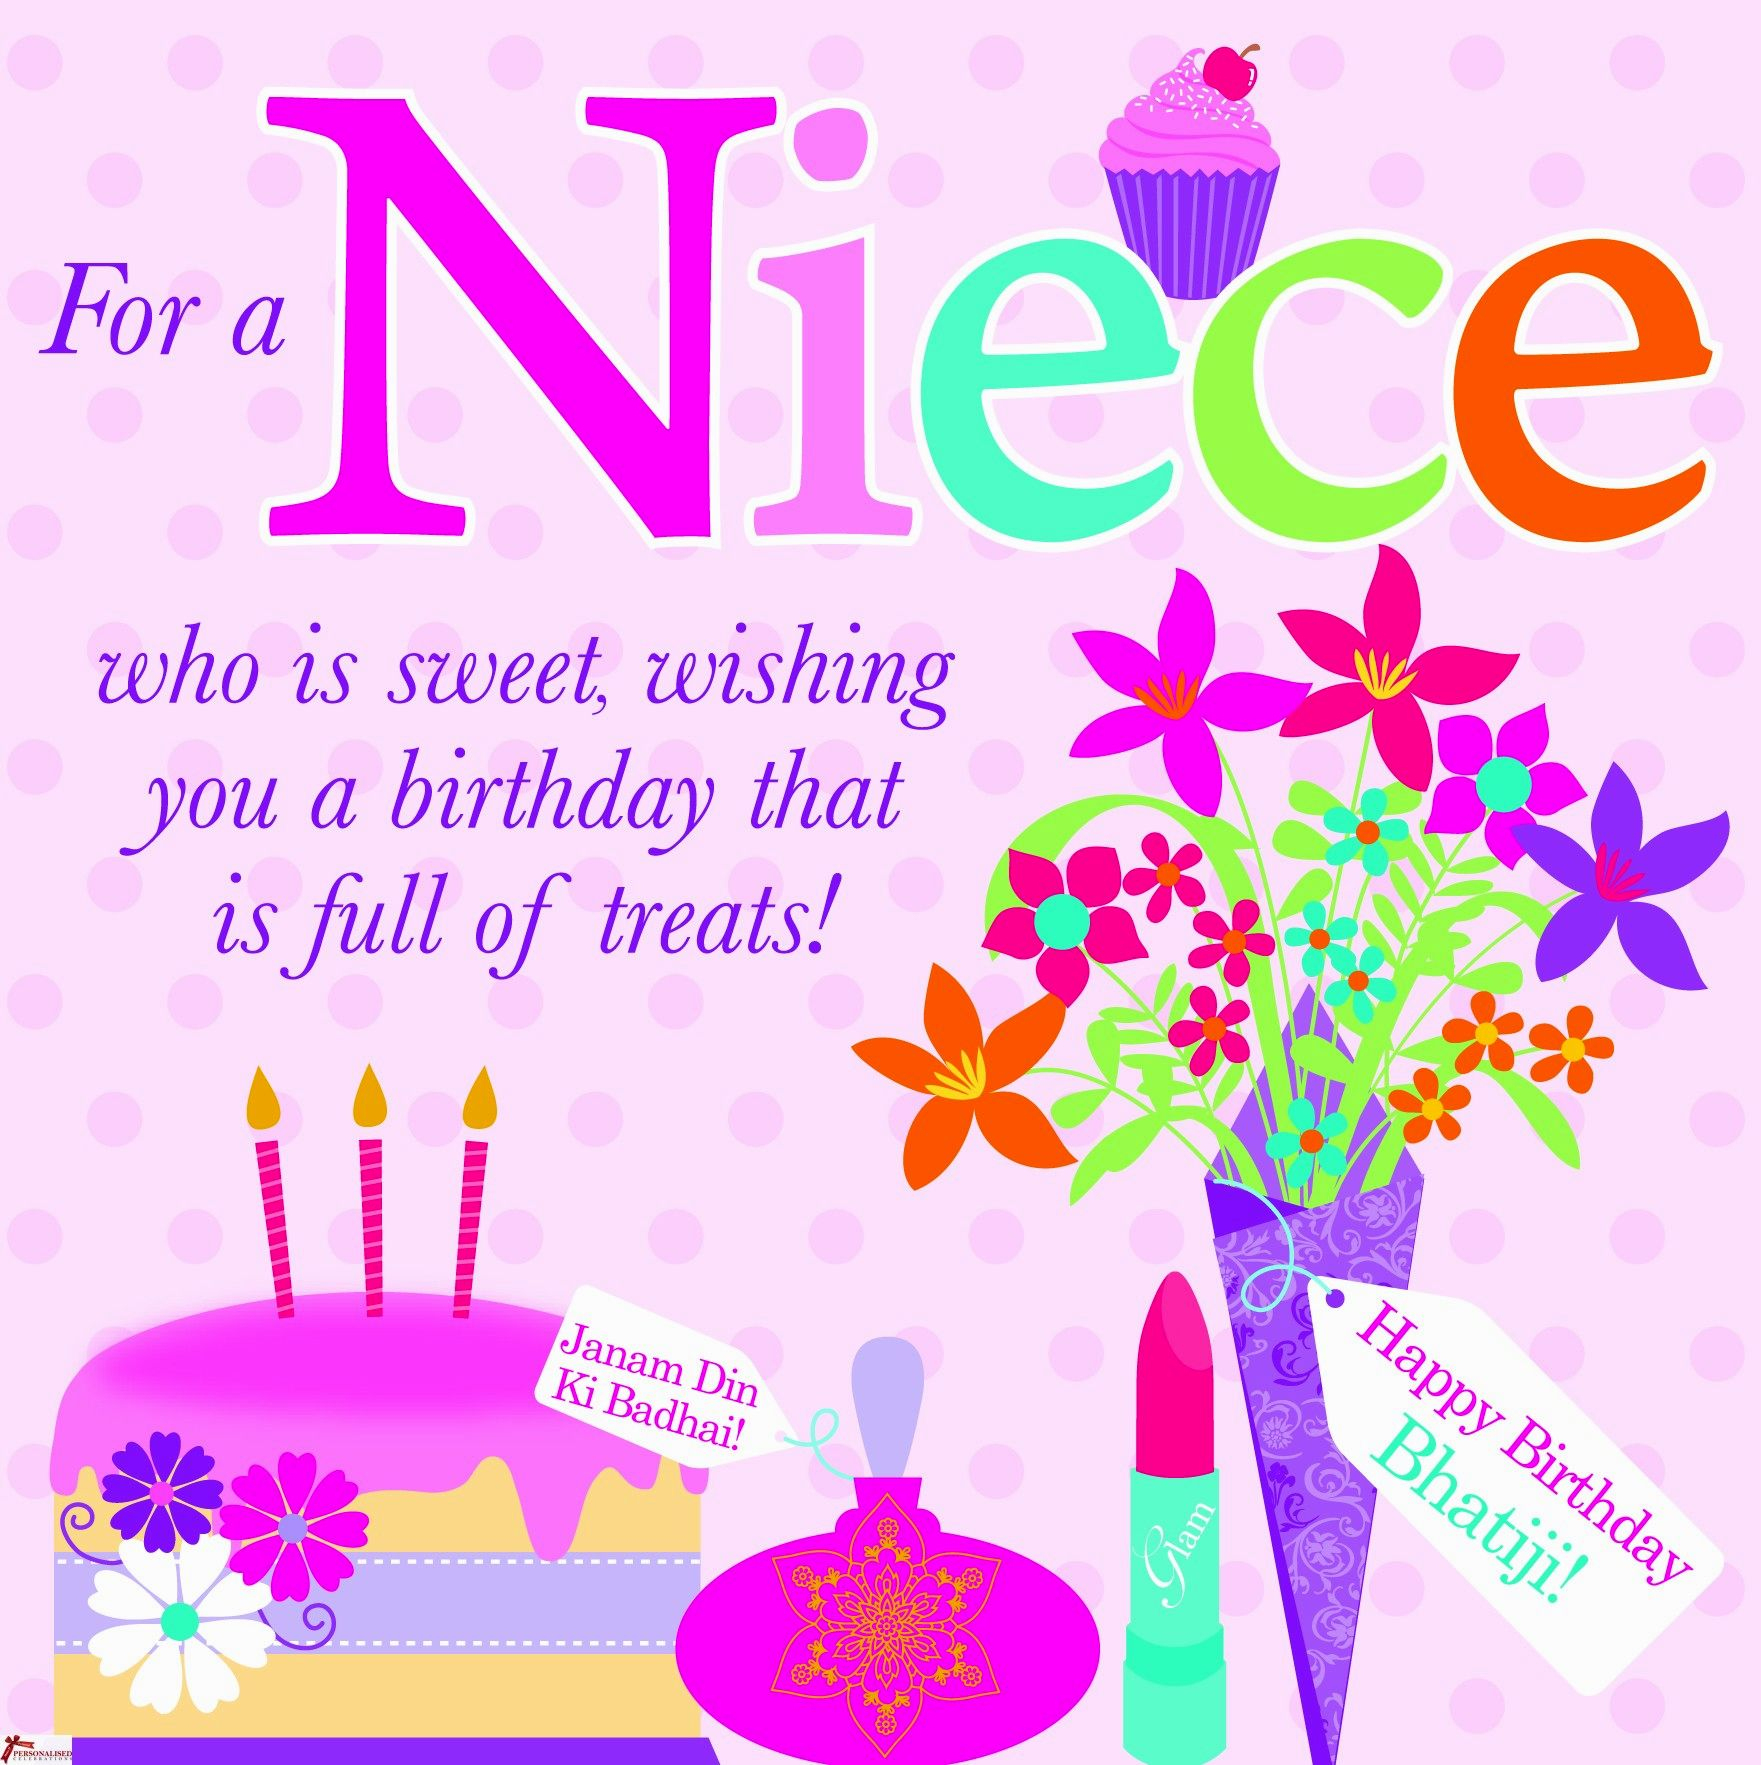 birthday greetings message to a niece ; modern-happy-birthday-wishes-to-my-niece-pattern-best-birthday-primary-happy-birthday-niece-wishes